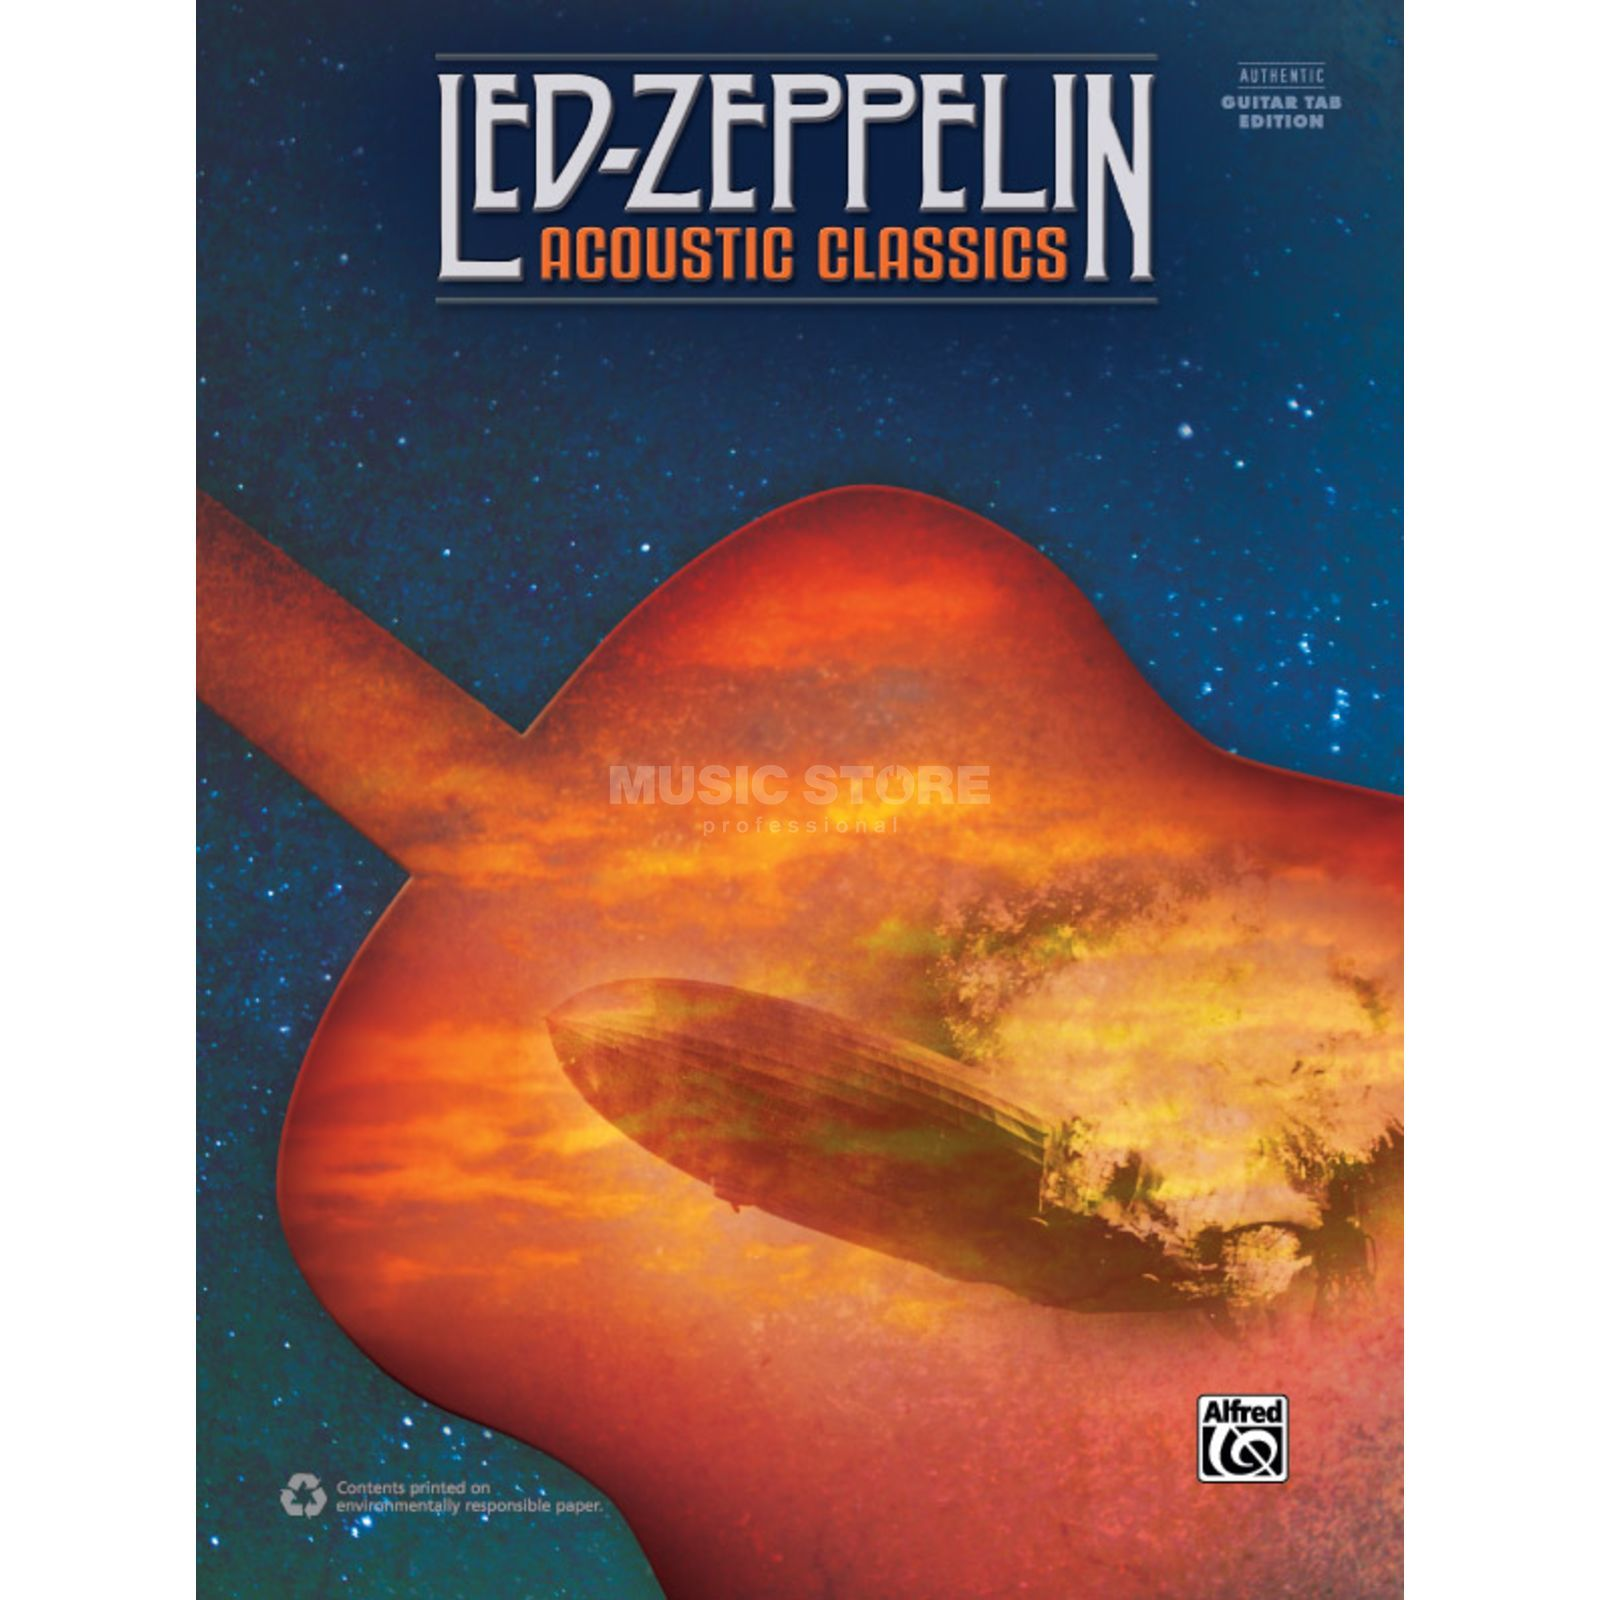 Alfred Music Led Zeppelin: Acoustic Classics (Revised) Produktbild